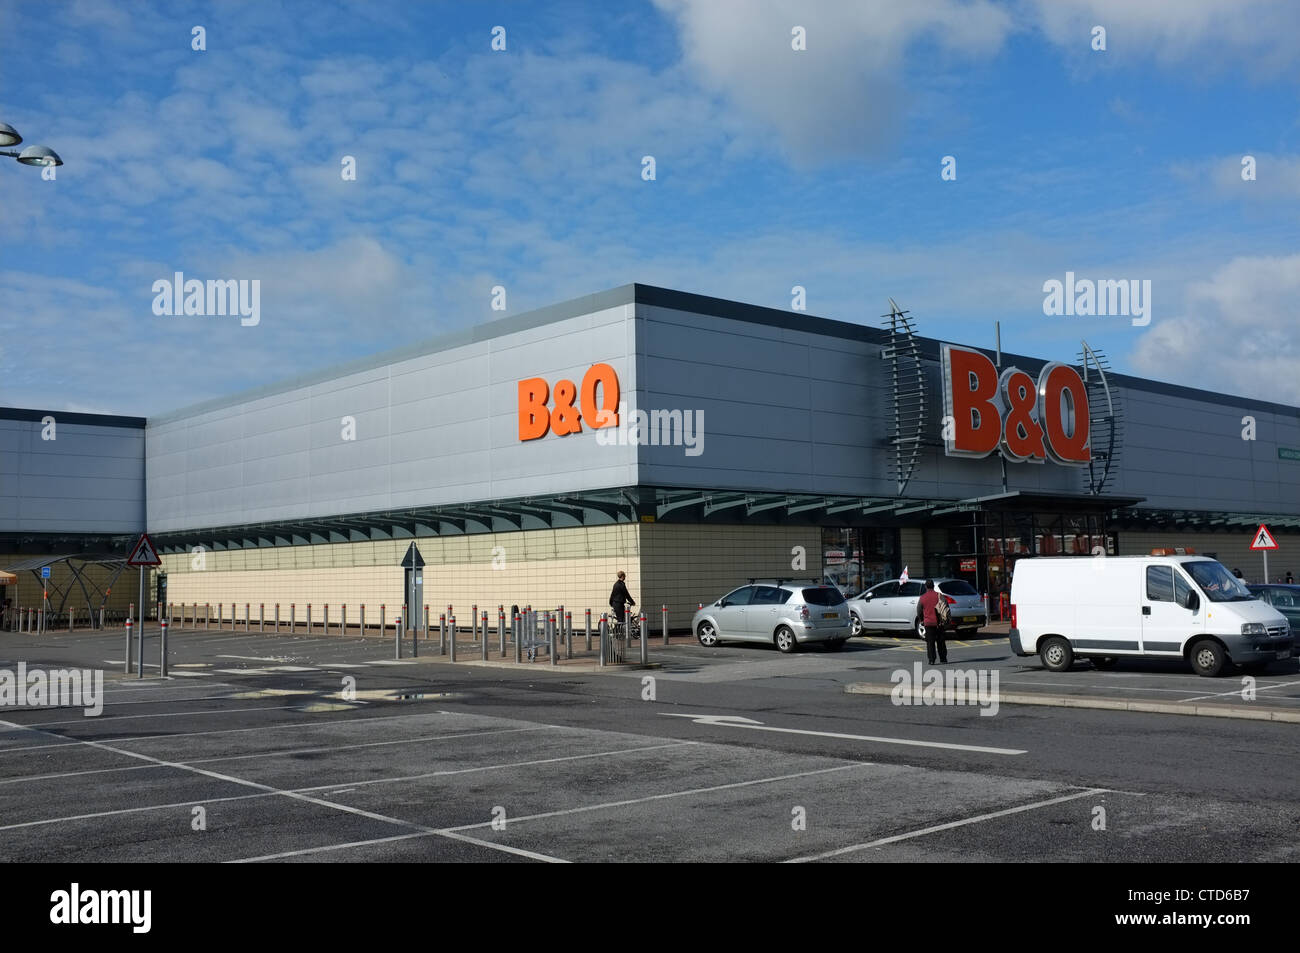 Mini Warehouse Stock Photos & Mini Warehouse Stock Images - Alamy